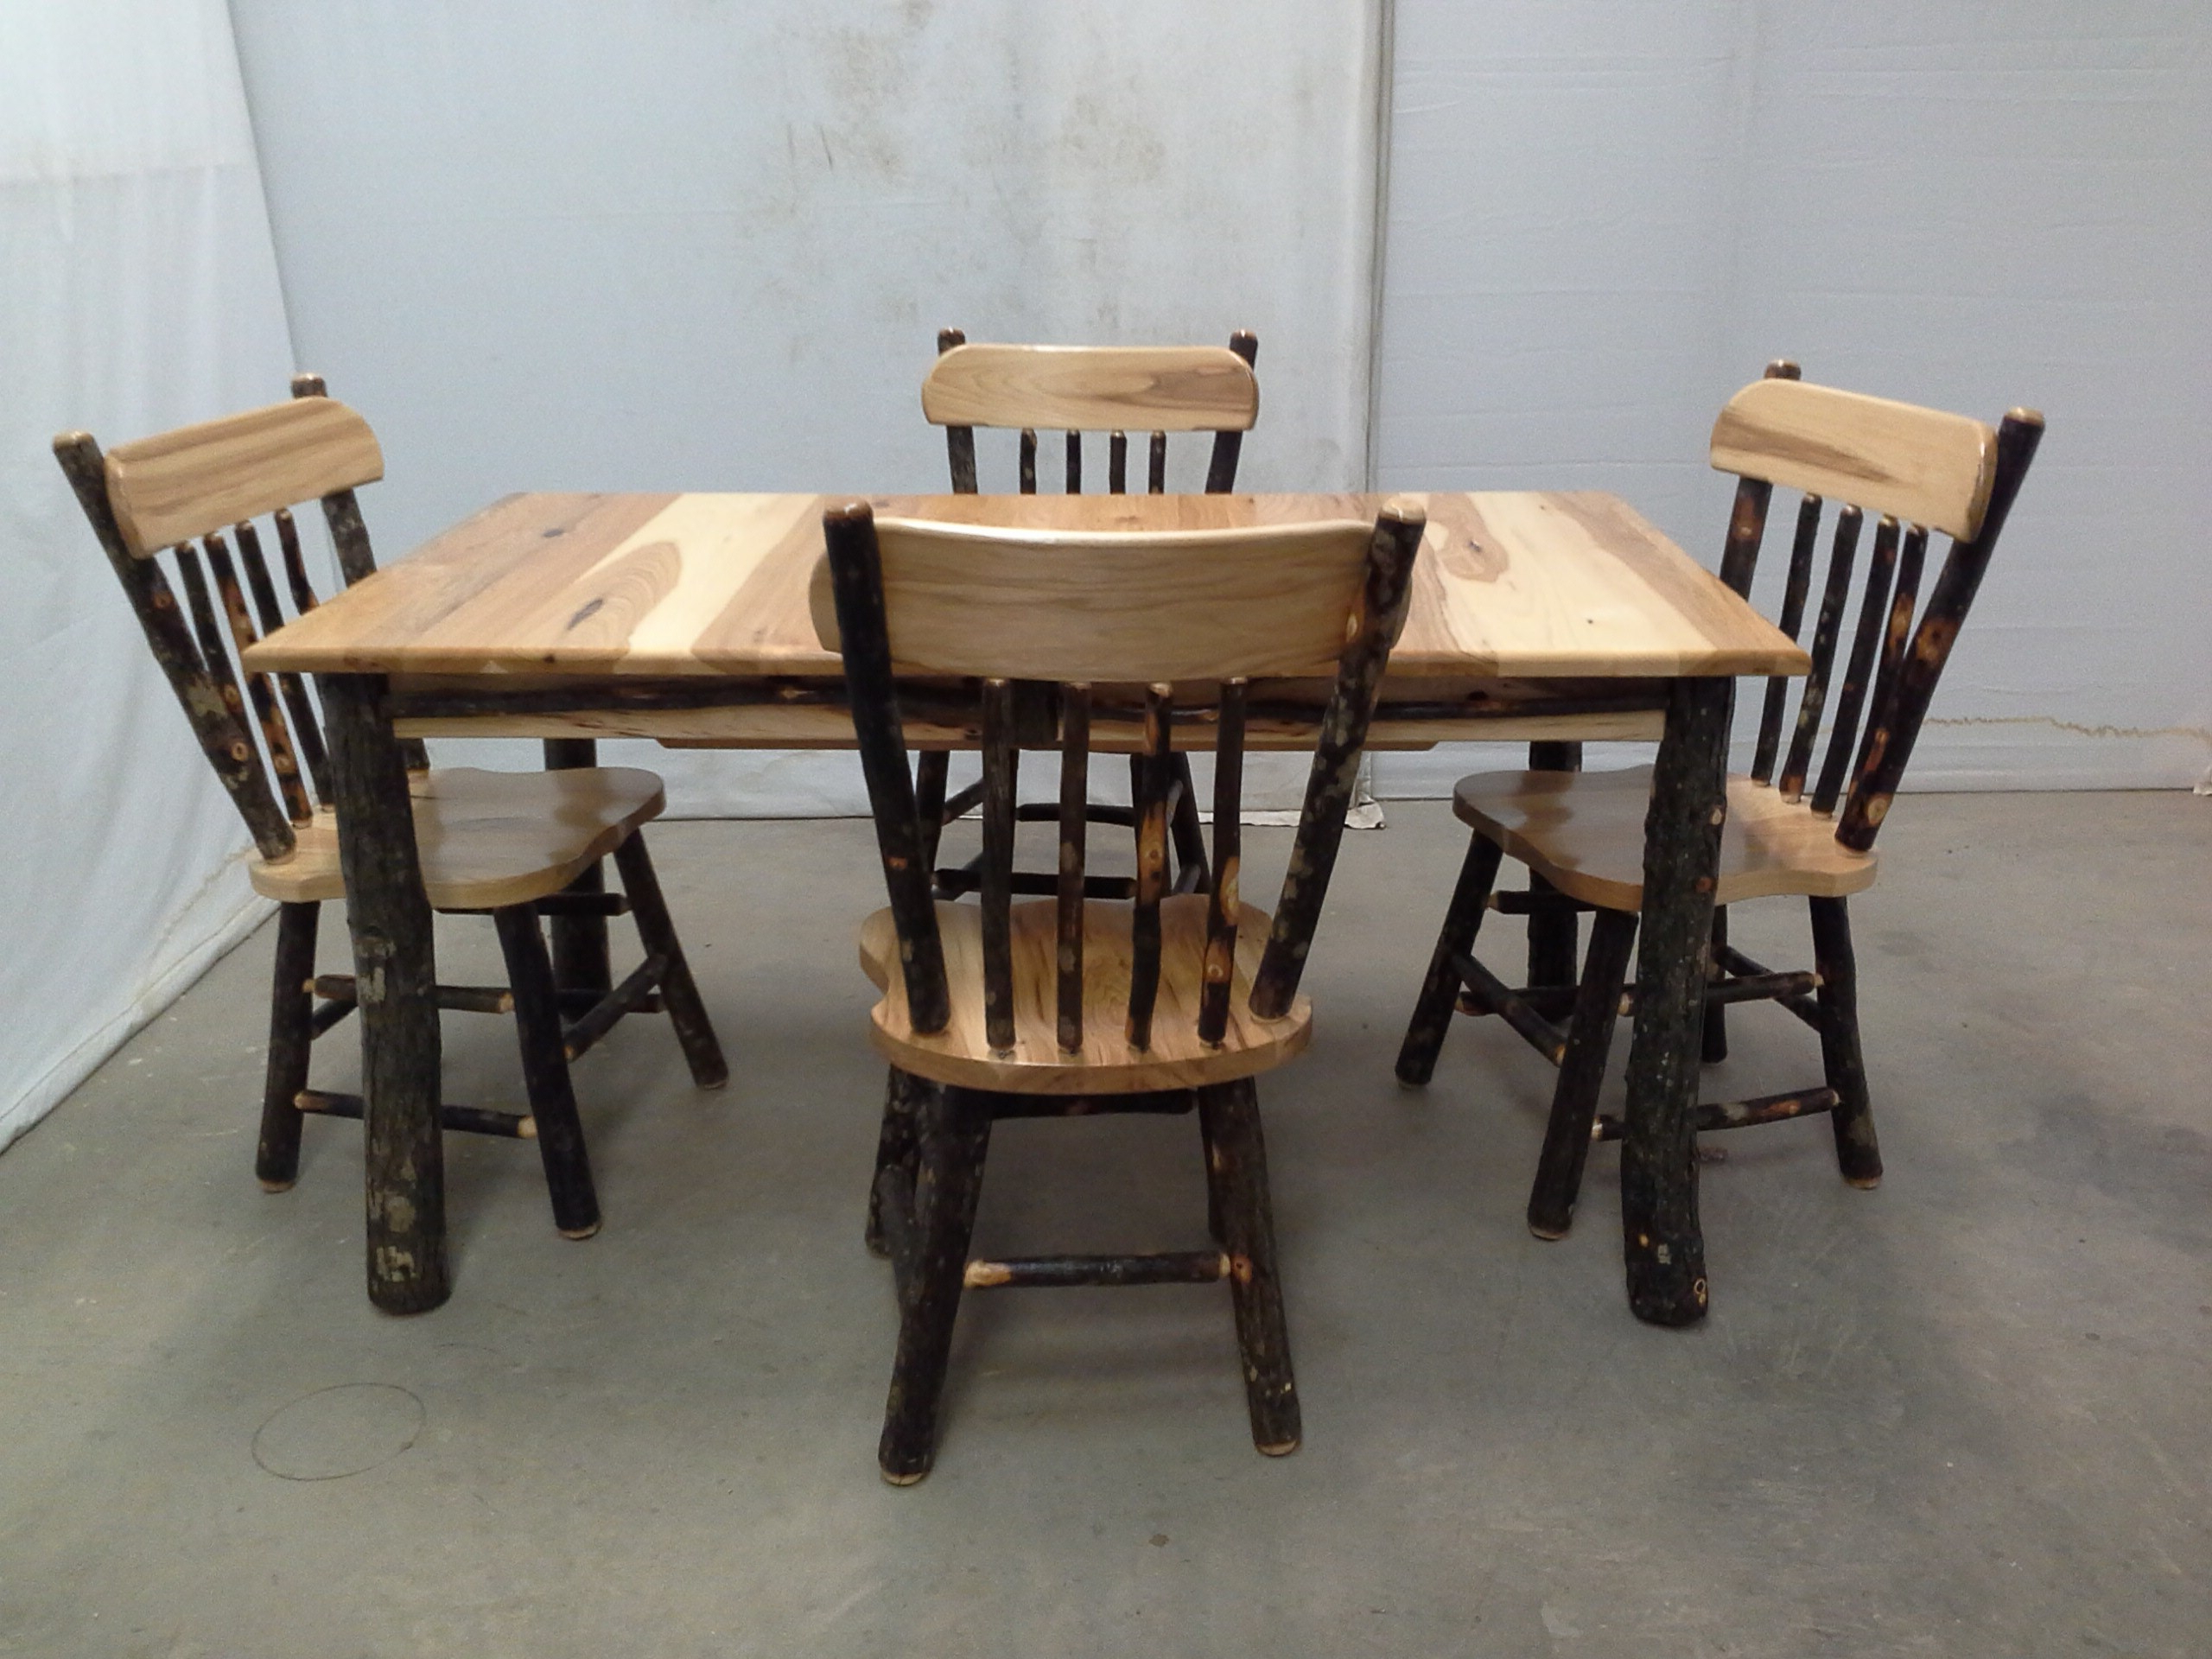 Latest Reinert 5 Piece Dining Sets Intended For Rustic Furniture For Home Or Cabin (Gallery 18 of 20)